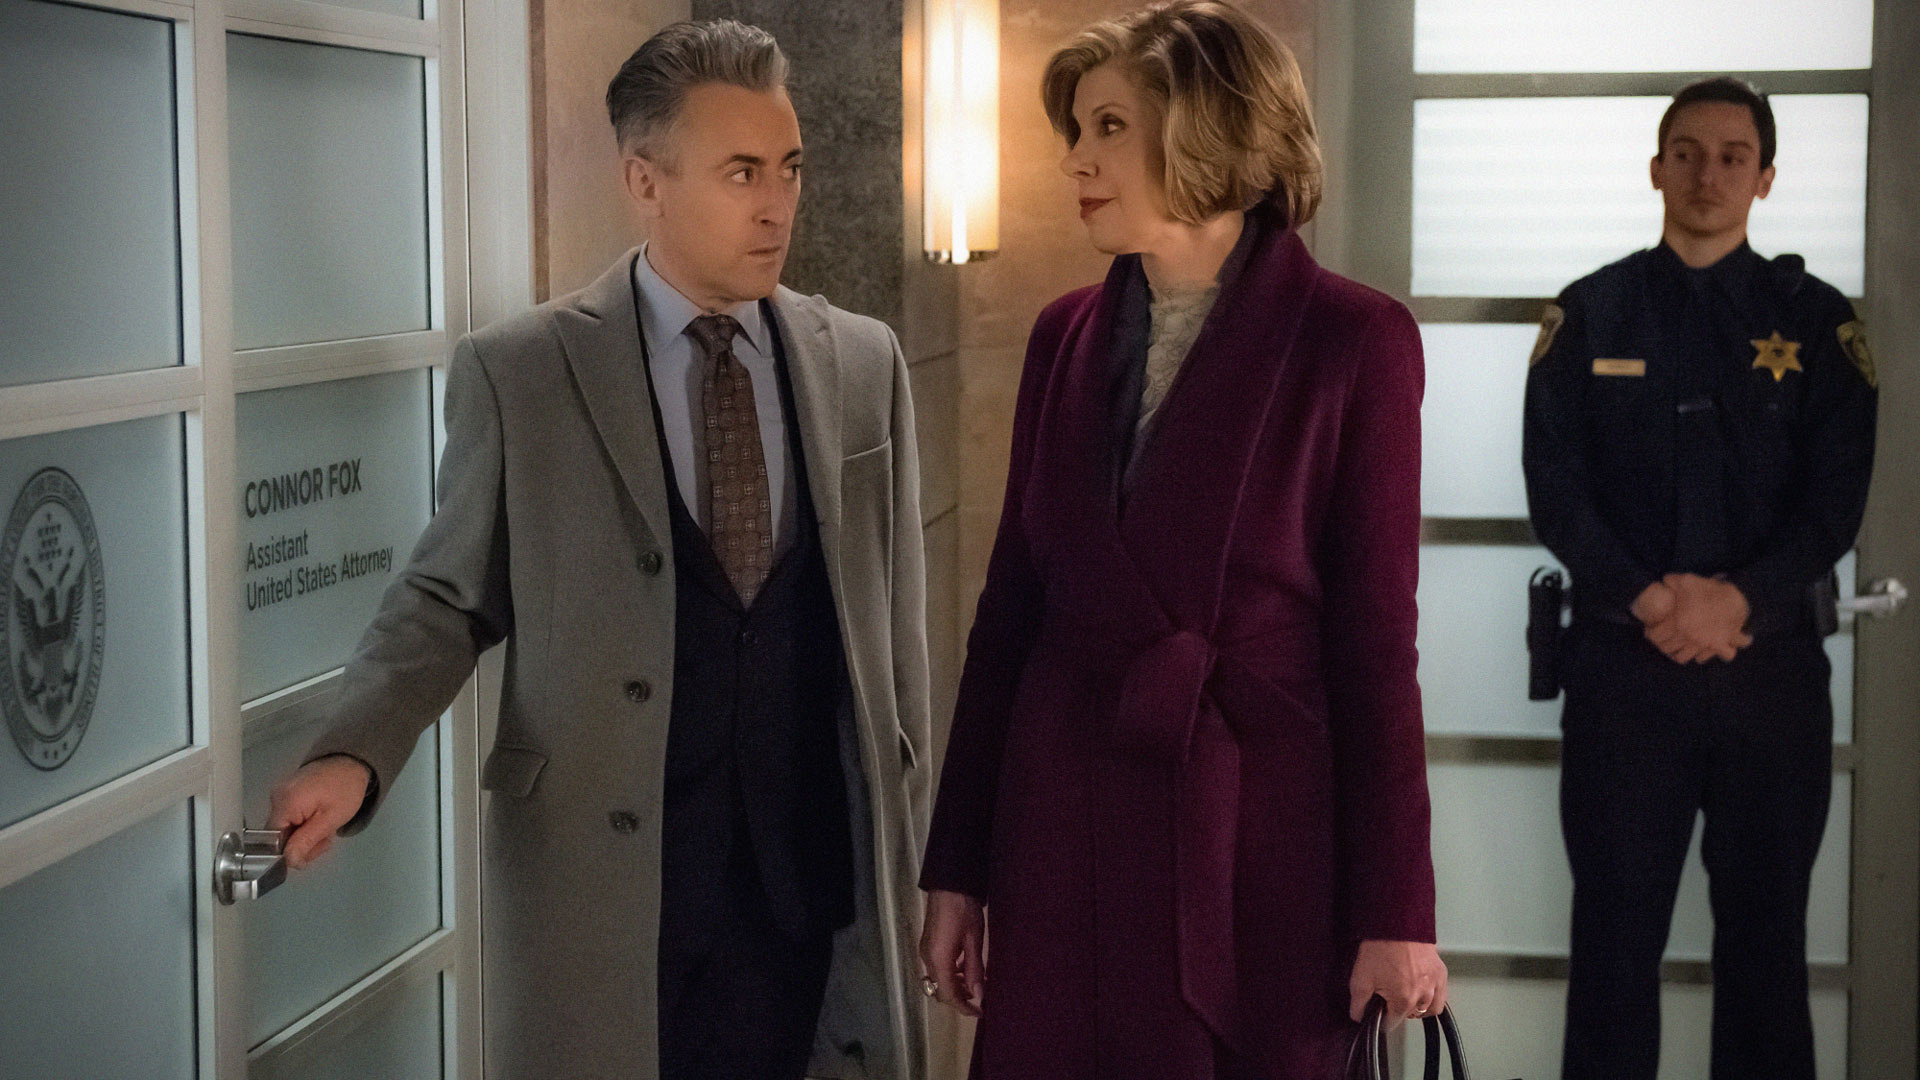 Alan Cumming as Eli Gold and Christine Baranski as Diane Lockhart